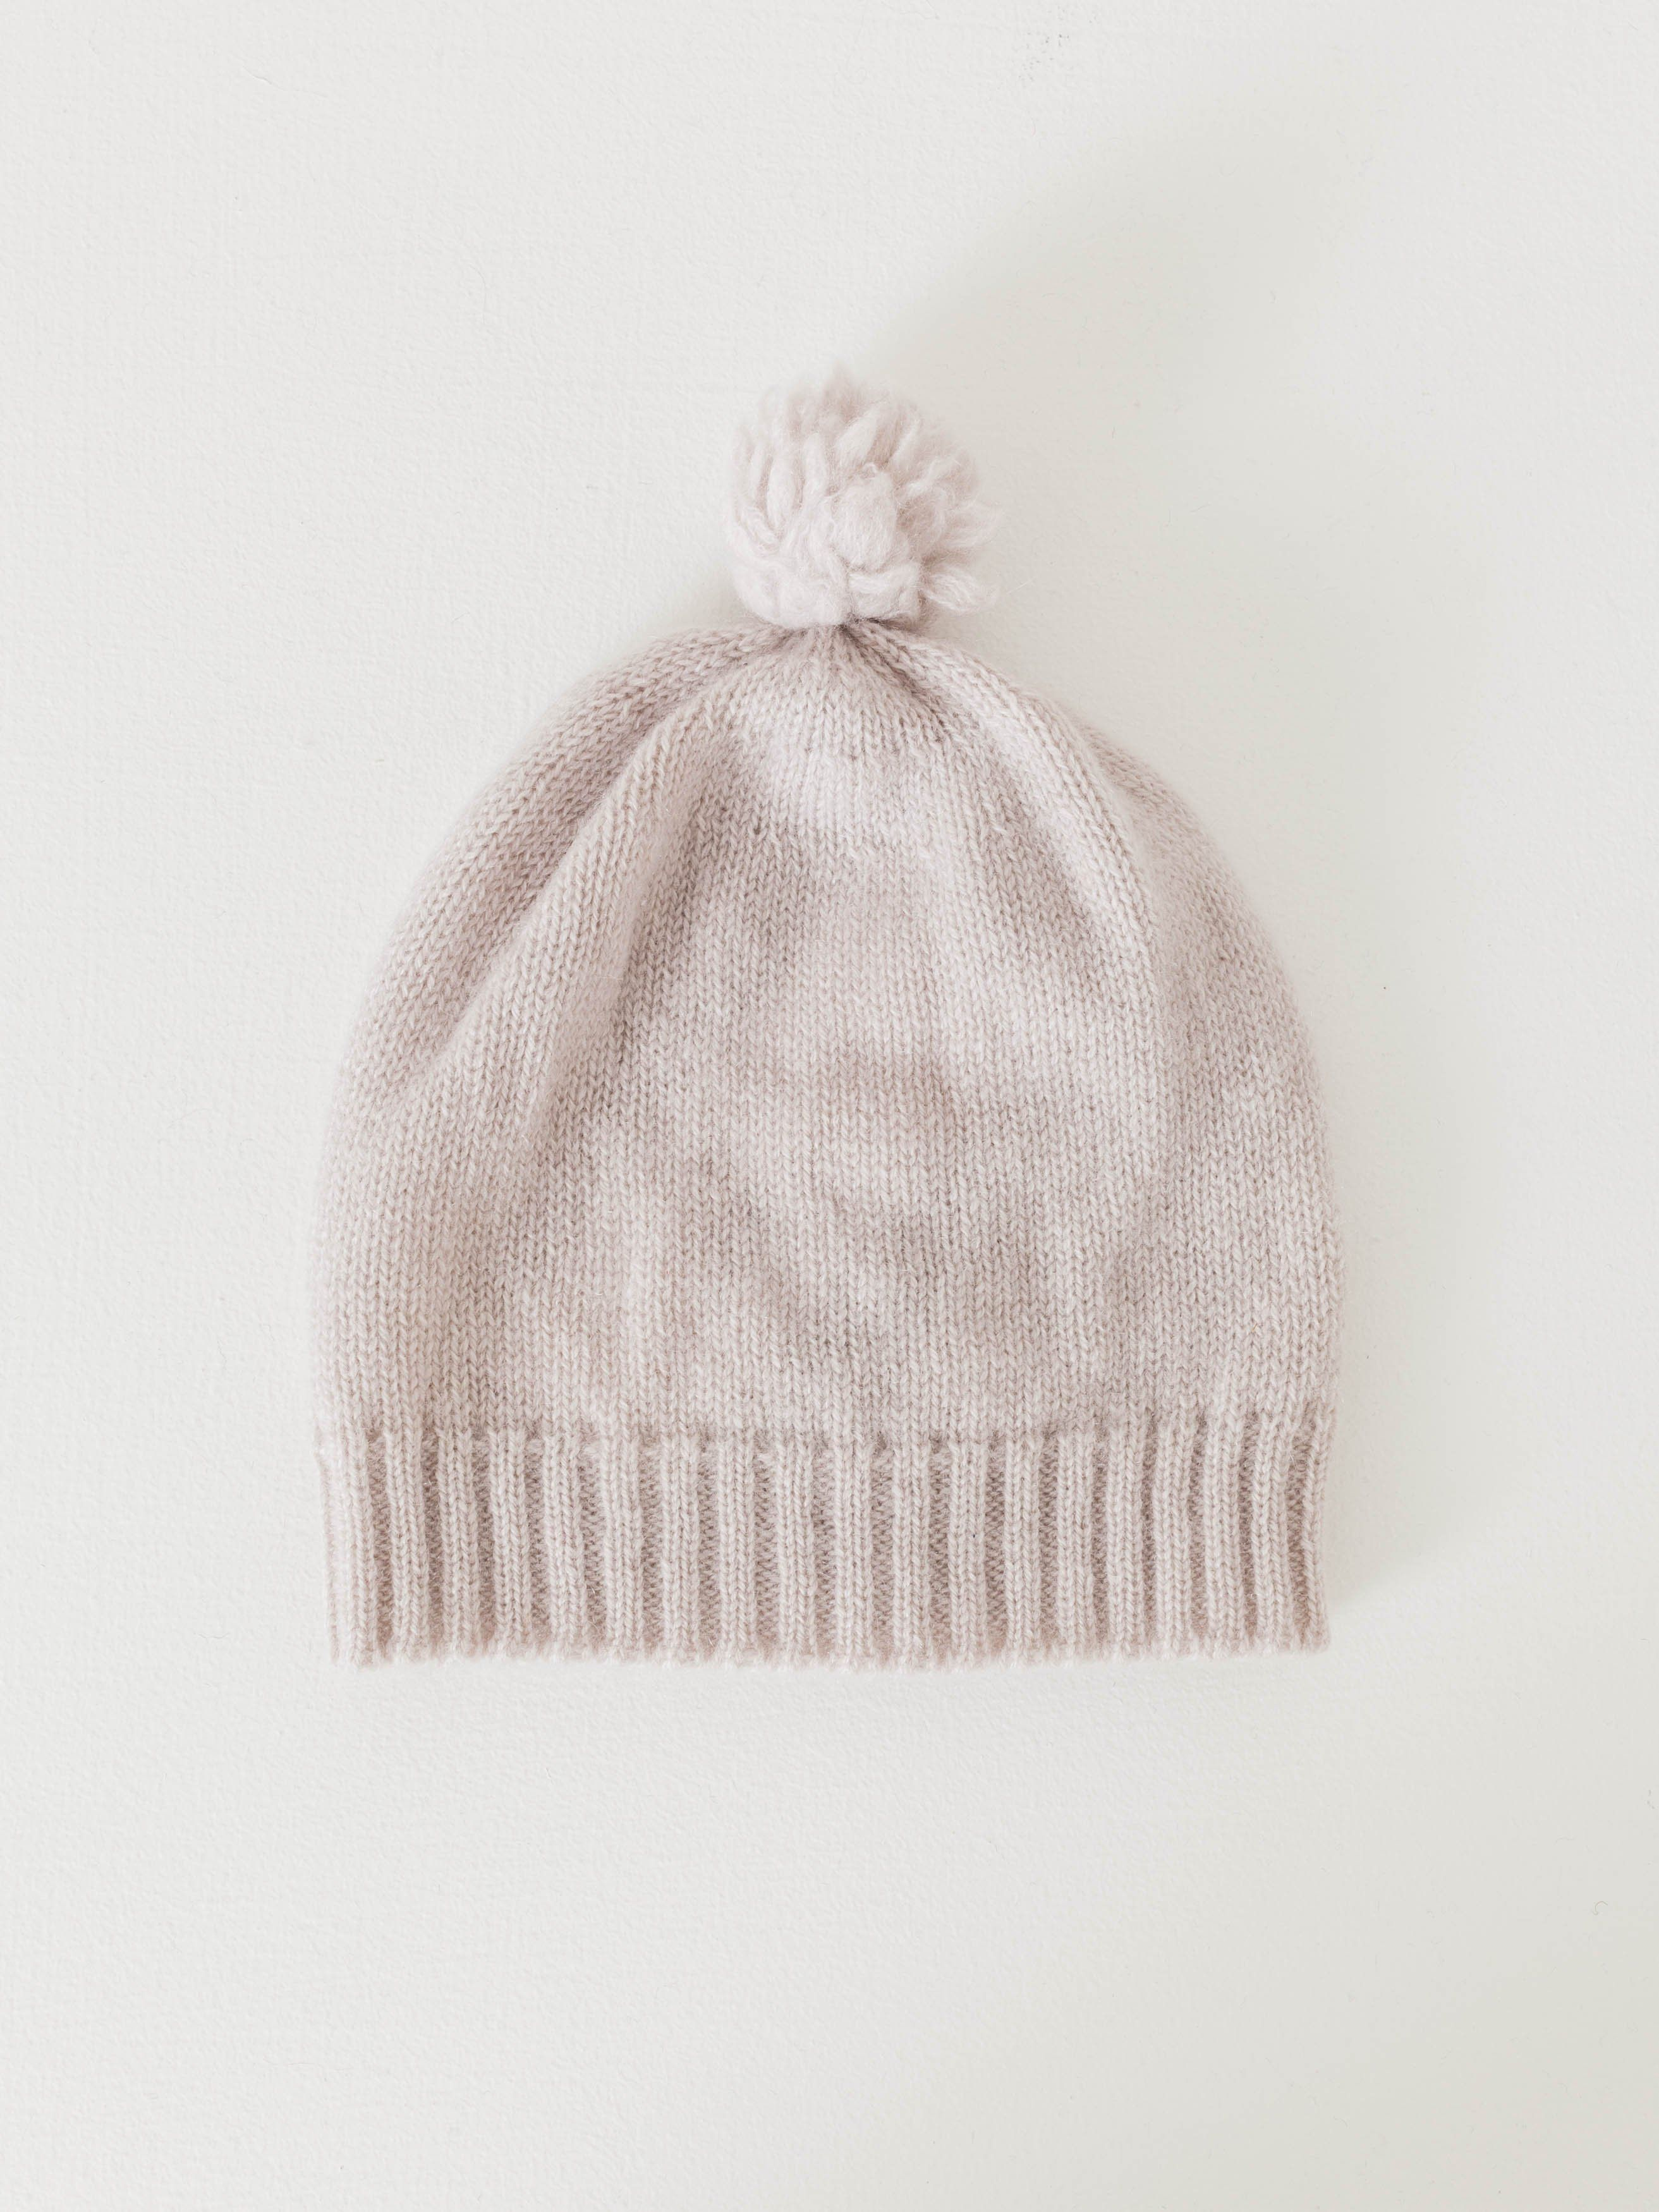 d53a65406352e Keep your newborn cozy and comfy in this cashmere hat. A great gift for  parents to be for their new arrival. - Ribbed hem - Pom on top - 100%  Cashmere ...